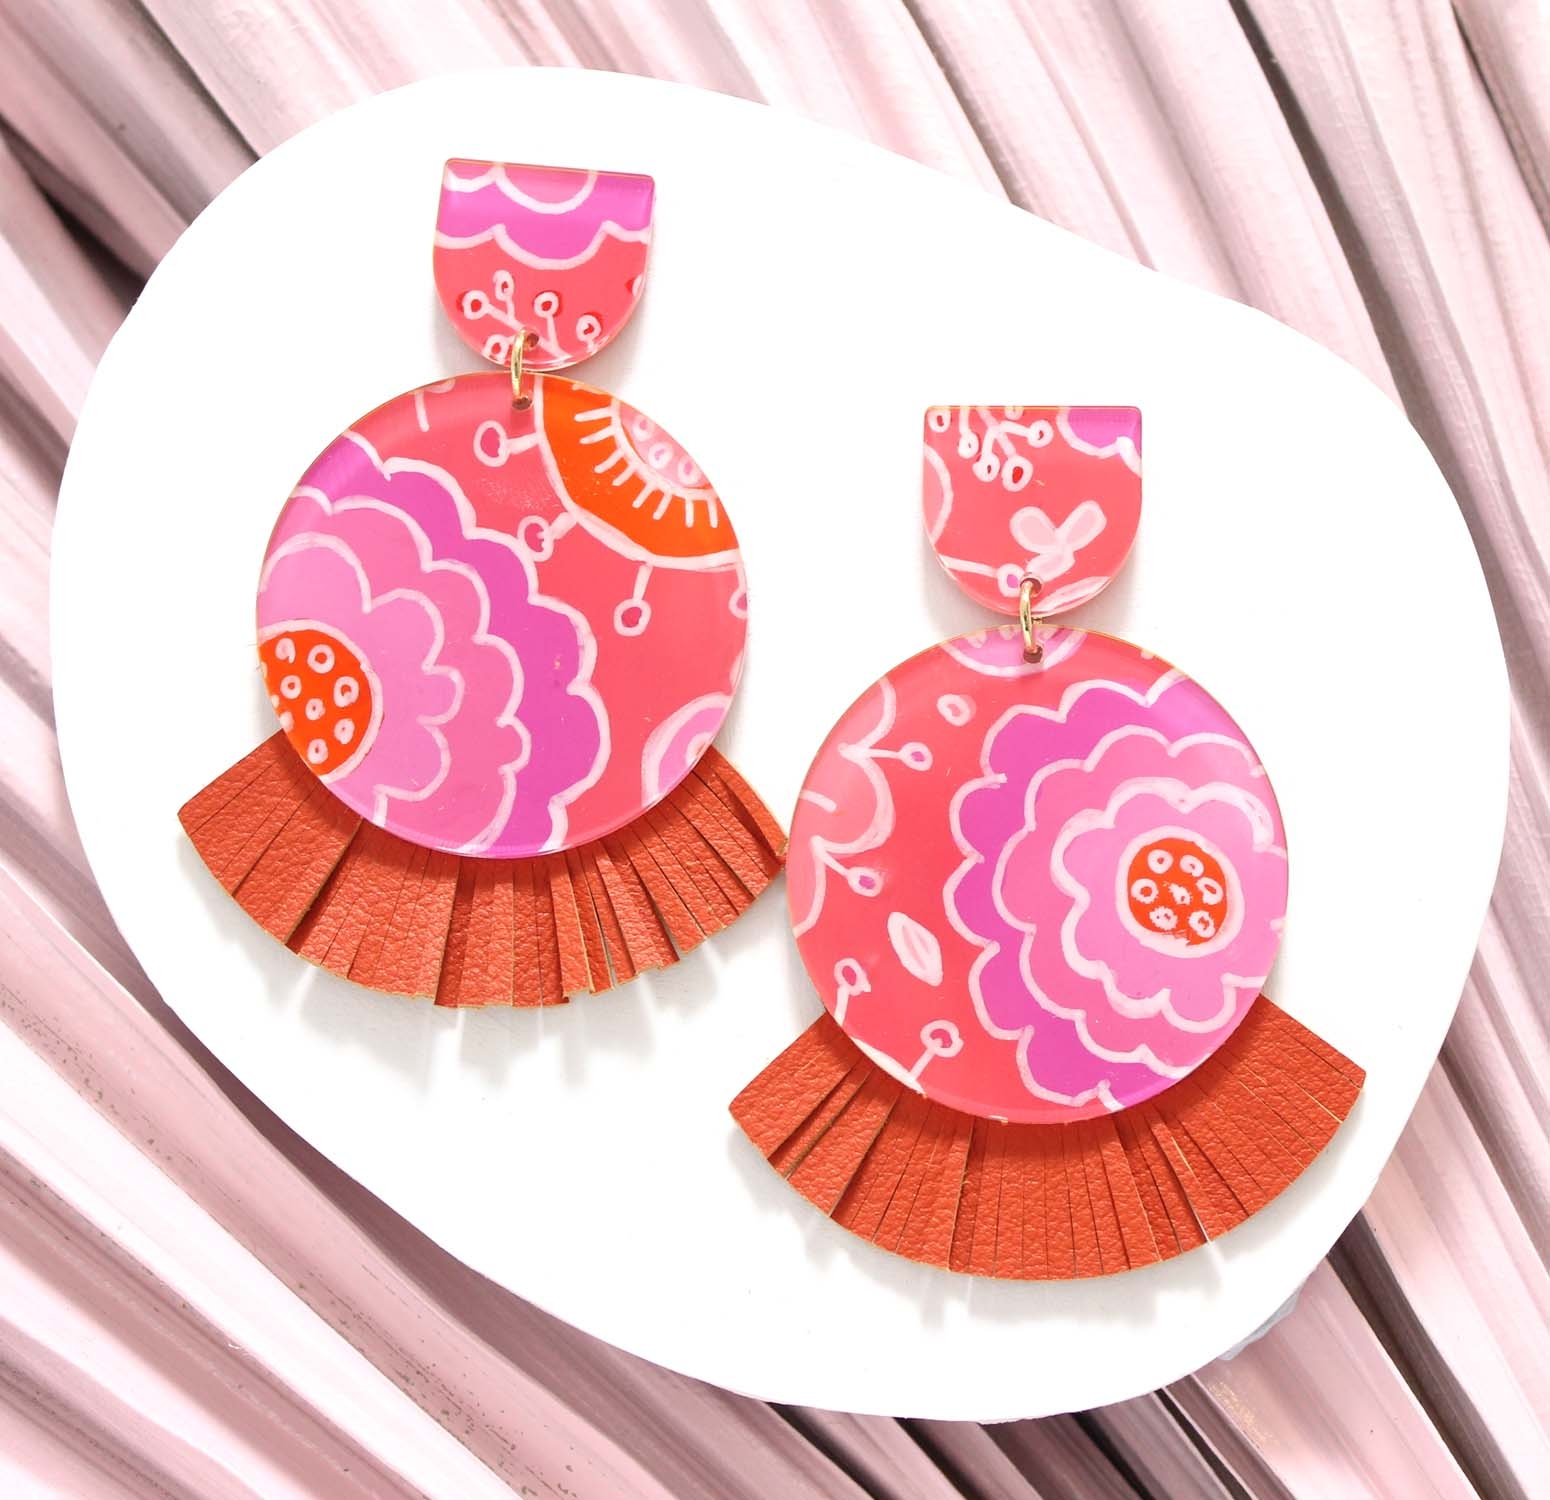 Lunar (Large Size) - Floral Pop – Orange Leather Statement Earrings, hand painted